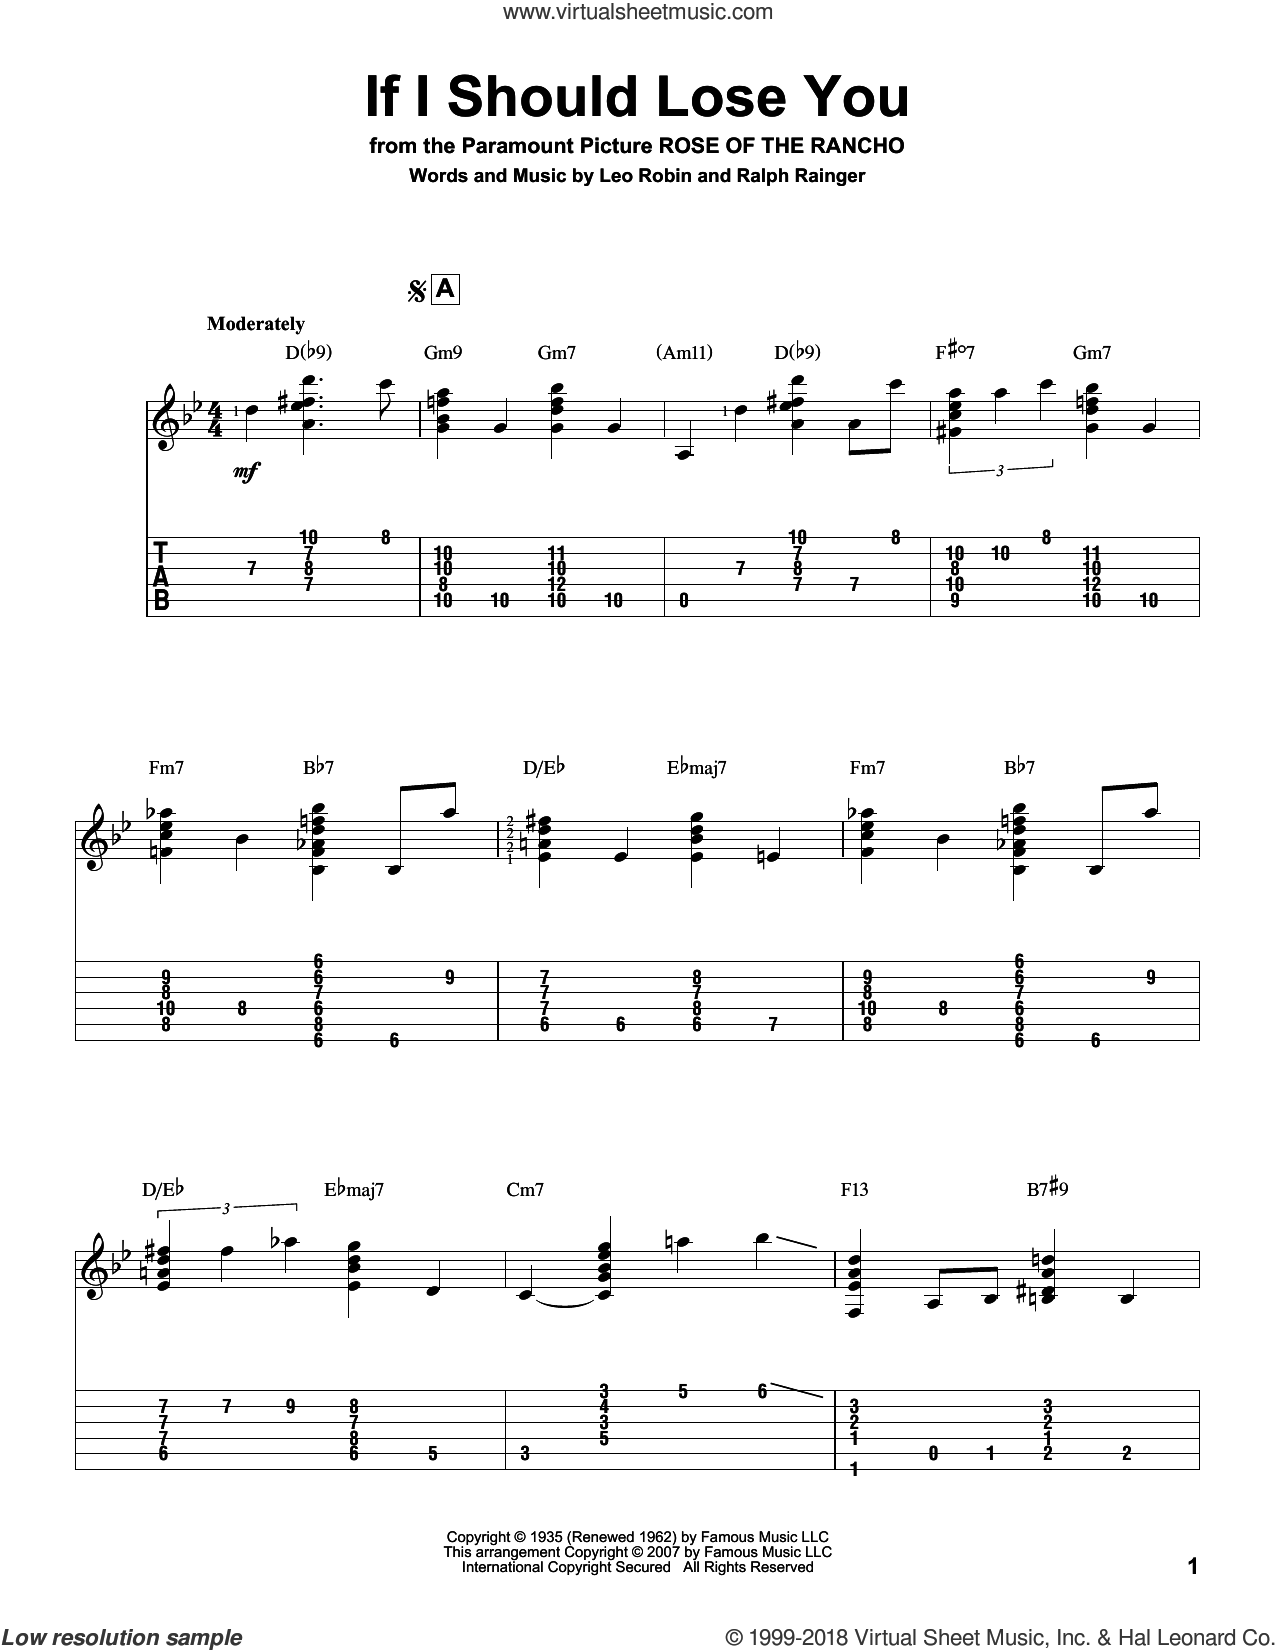 If I Should Lose You sheet music for guitar solo by Ralph Rainger, Phineas Newborn and Leo Robin. Score Image Preview.